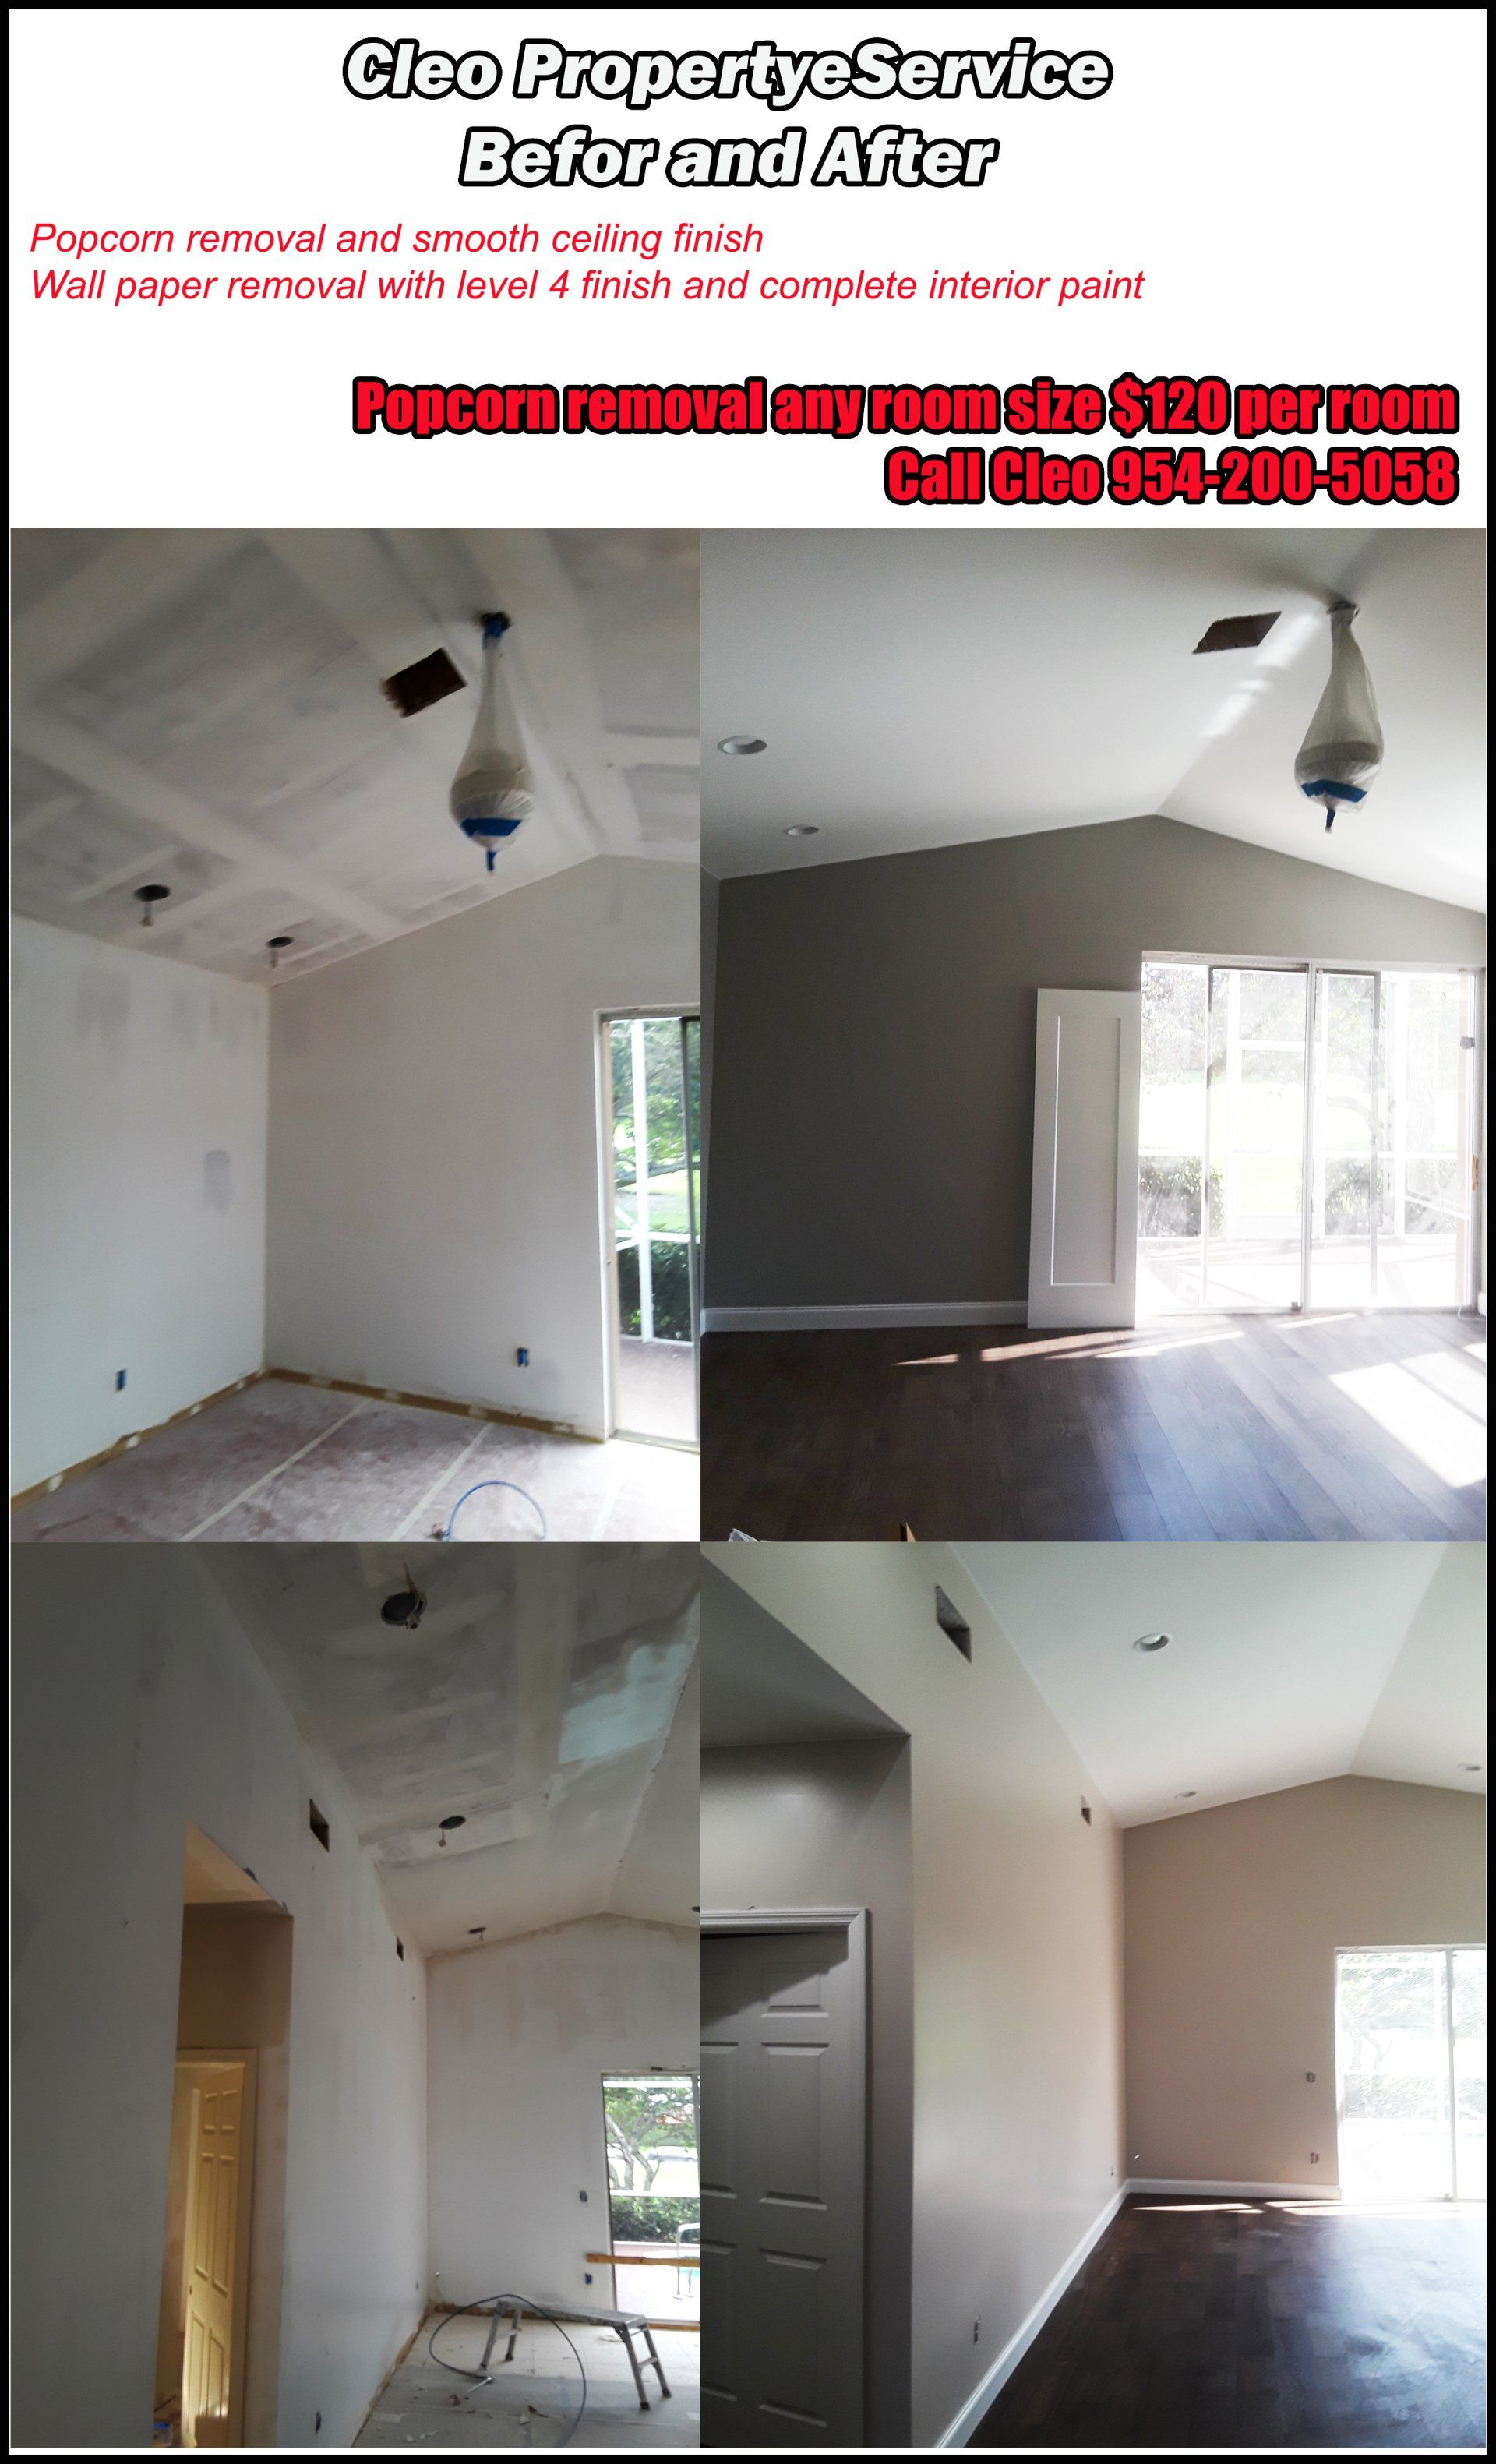 Cleo Popcorn Ceiling Removers